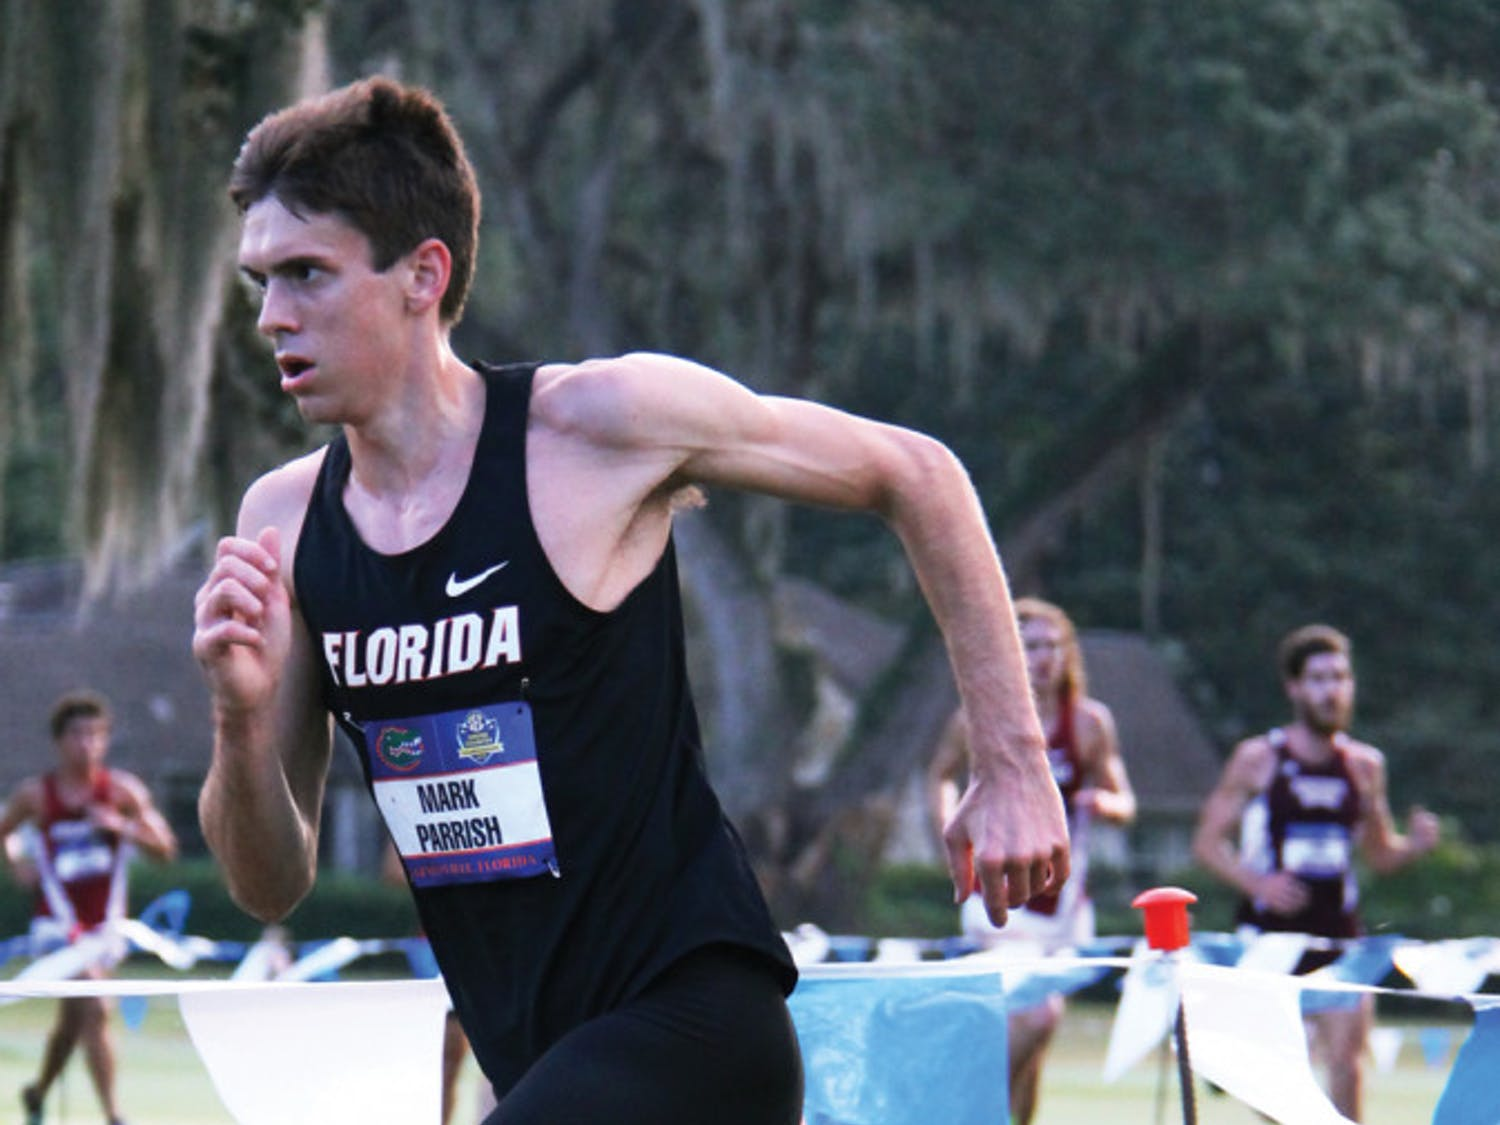 Mark Parrish runs in the Southeastern Conference Championship on Nov. 1, 2013 at the Mark Bostick Golf Course in Gainesville.